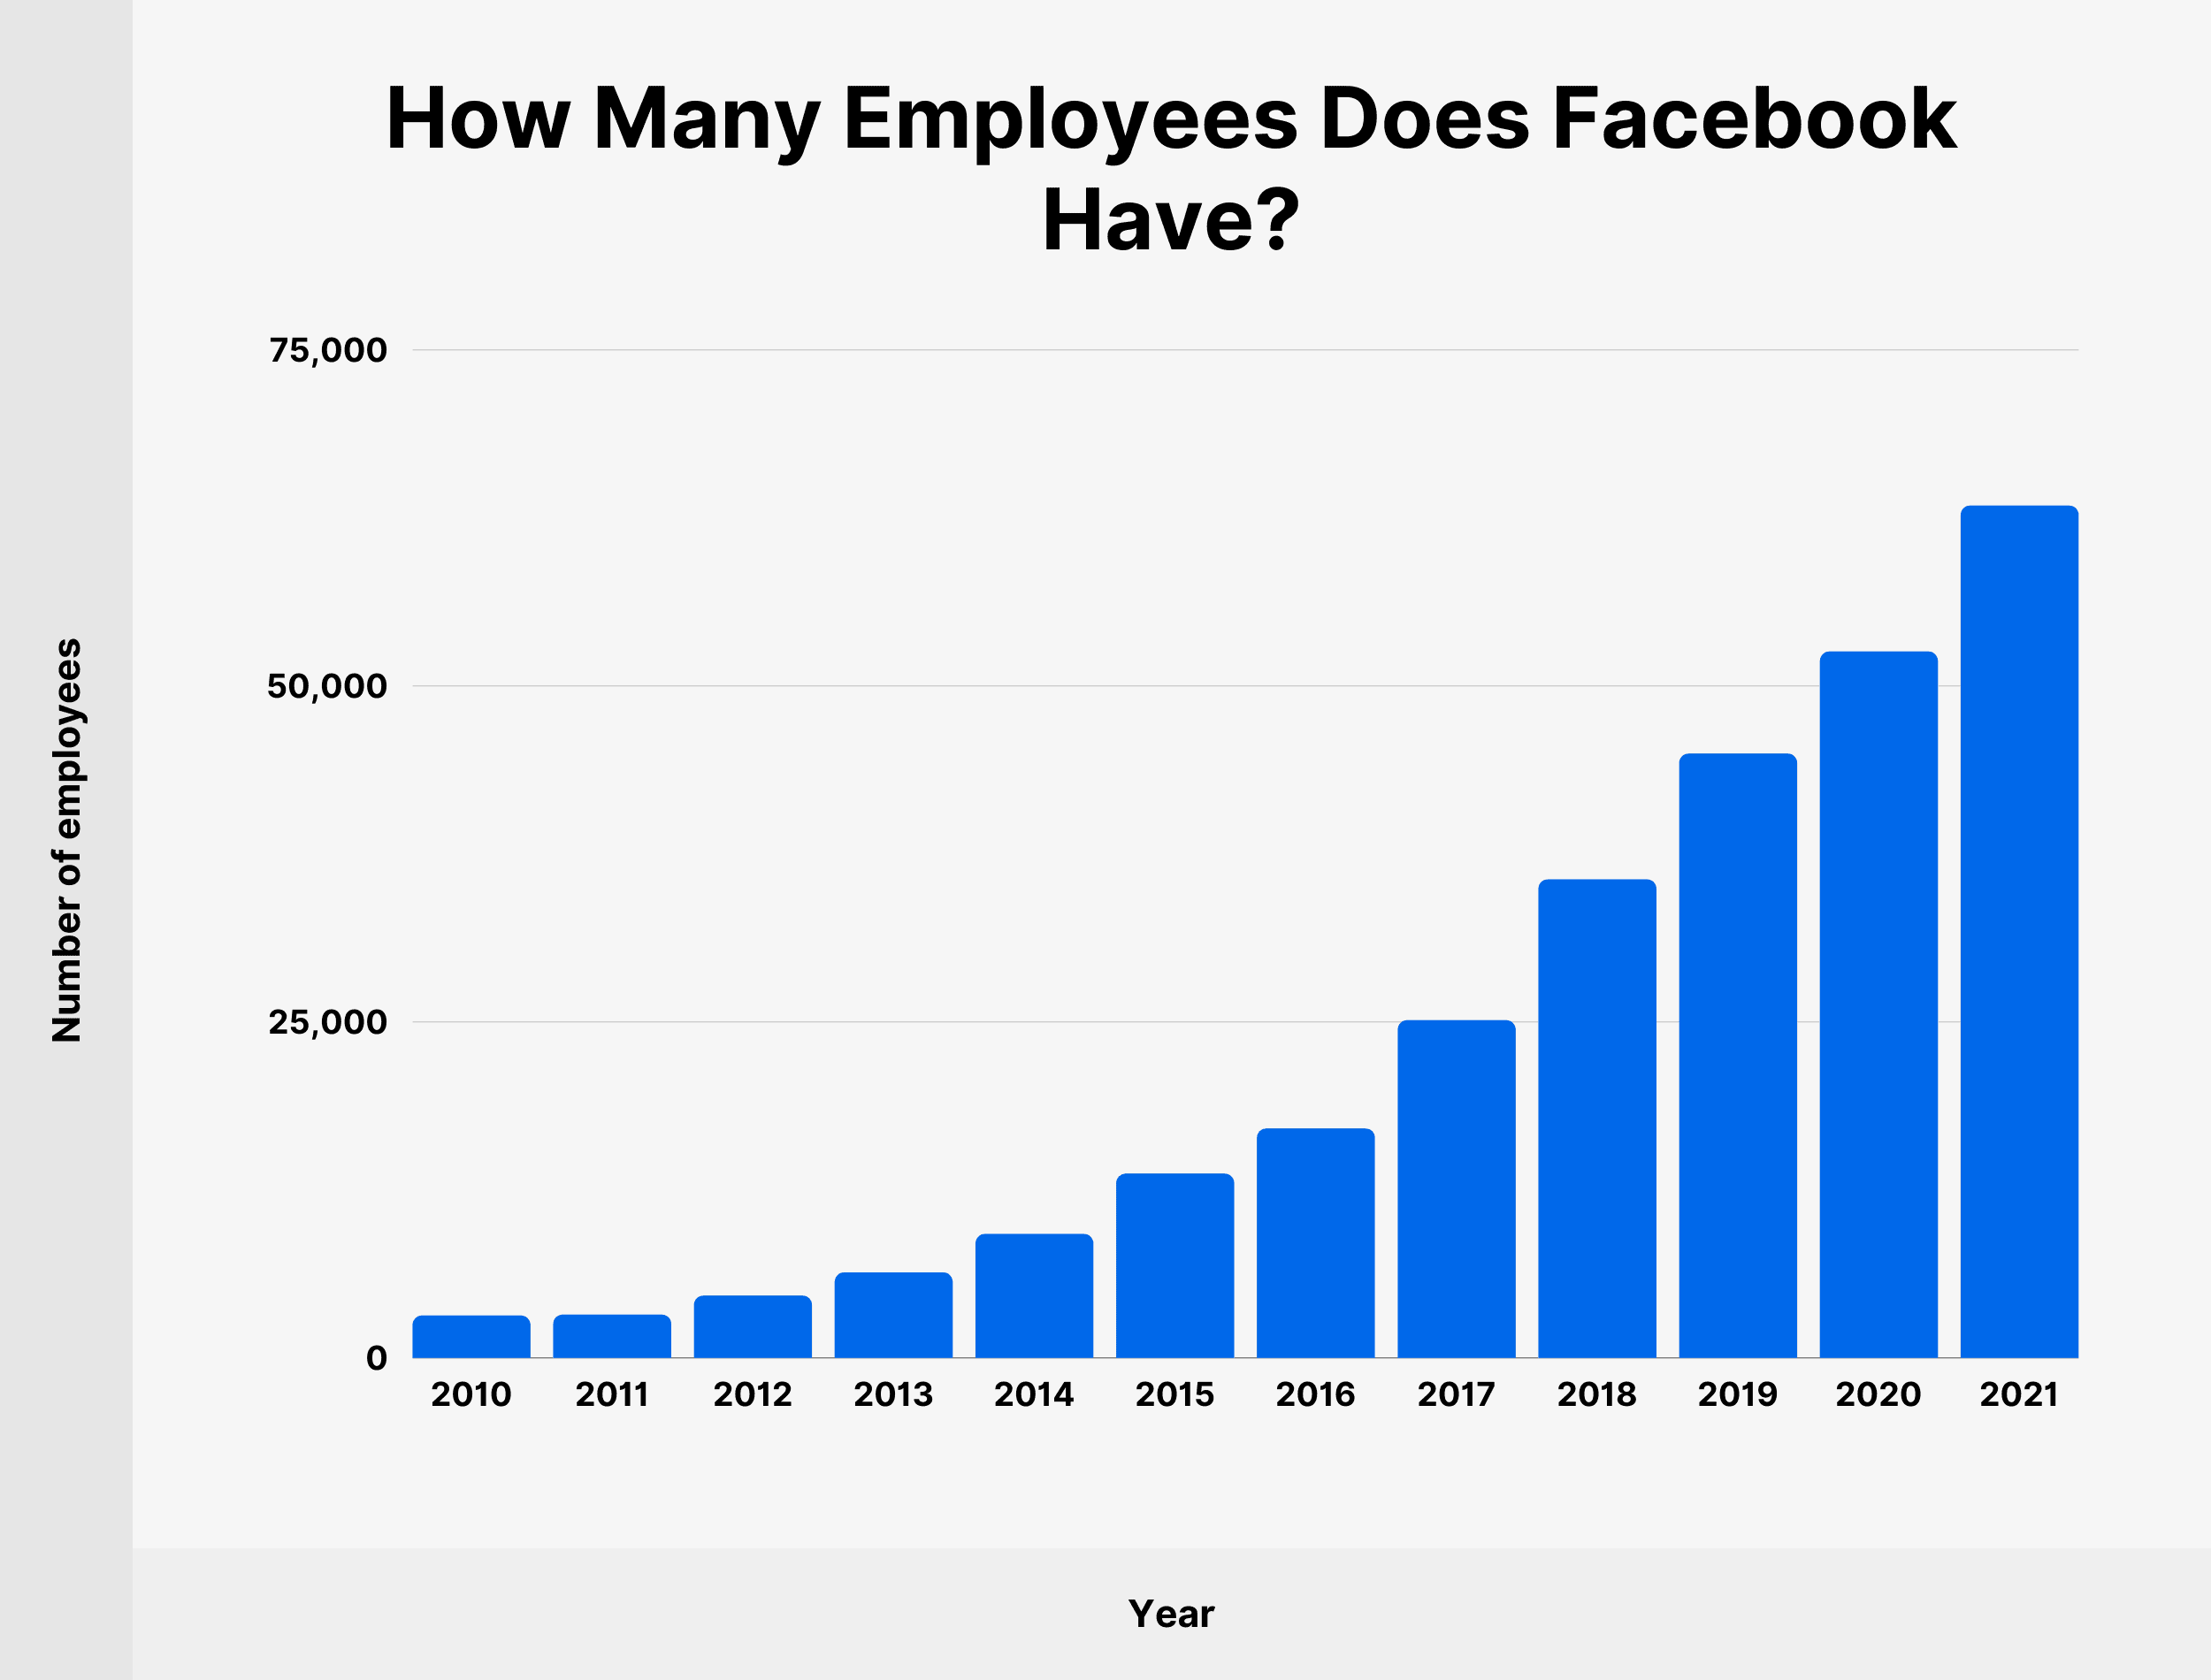 How Many Employees Does Facebook Have?